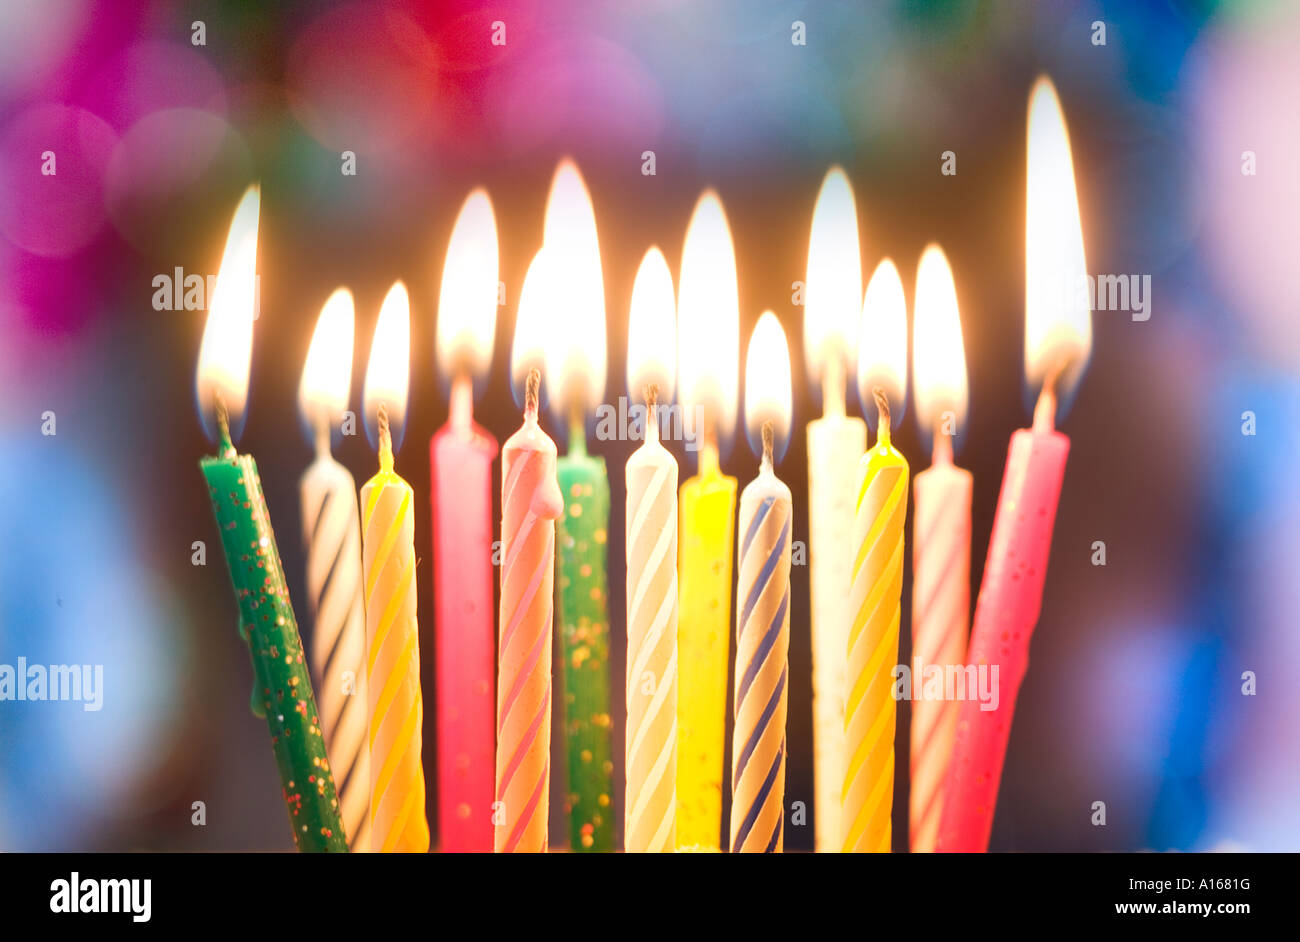 lit birthday cake candles close up stock photo 10157067 alamy